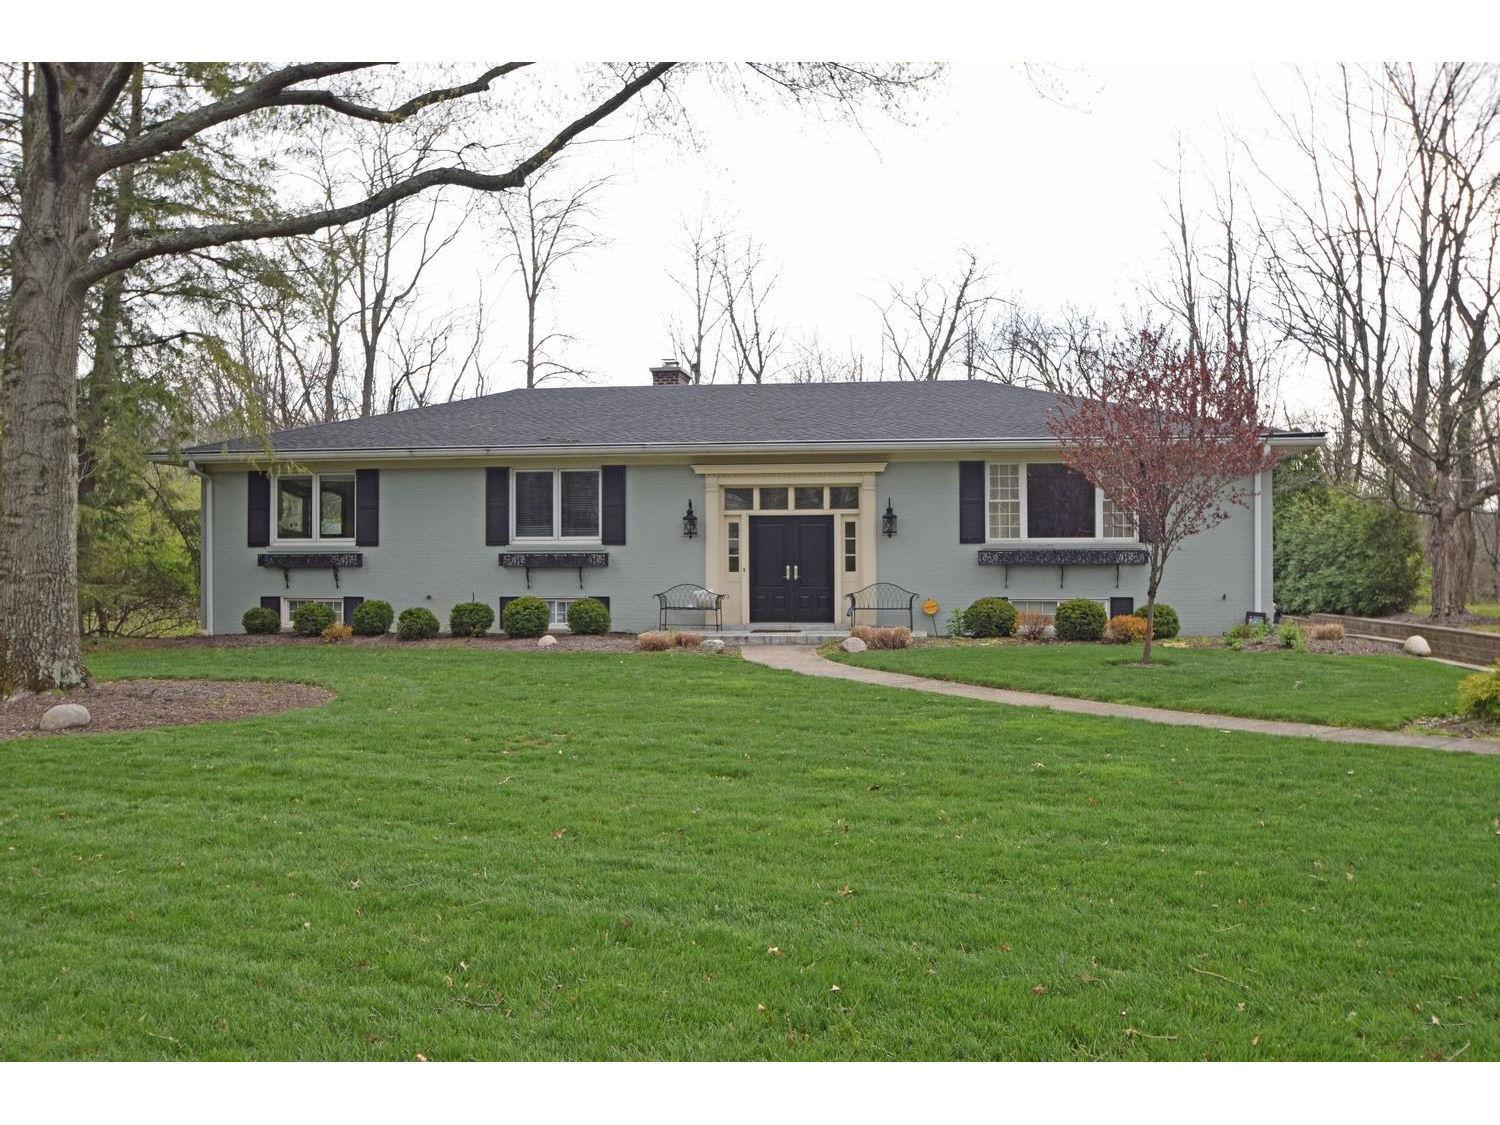 3585 Arborcrest Ct, Amberley, OH 45236 Listing Details: MLS 1481017 on nice house roofs, nice house windows, nice house stairs, nice house decks, nice house rooms,